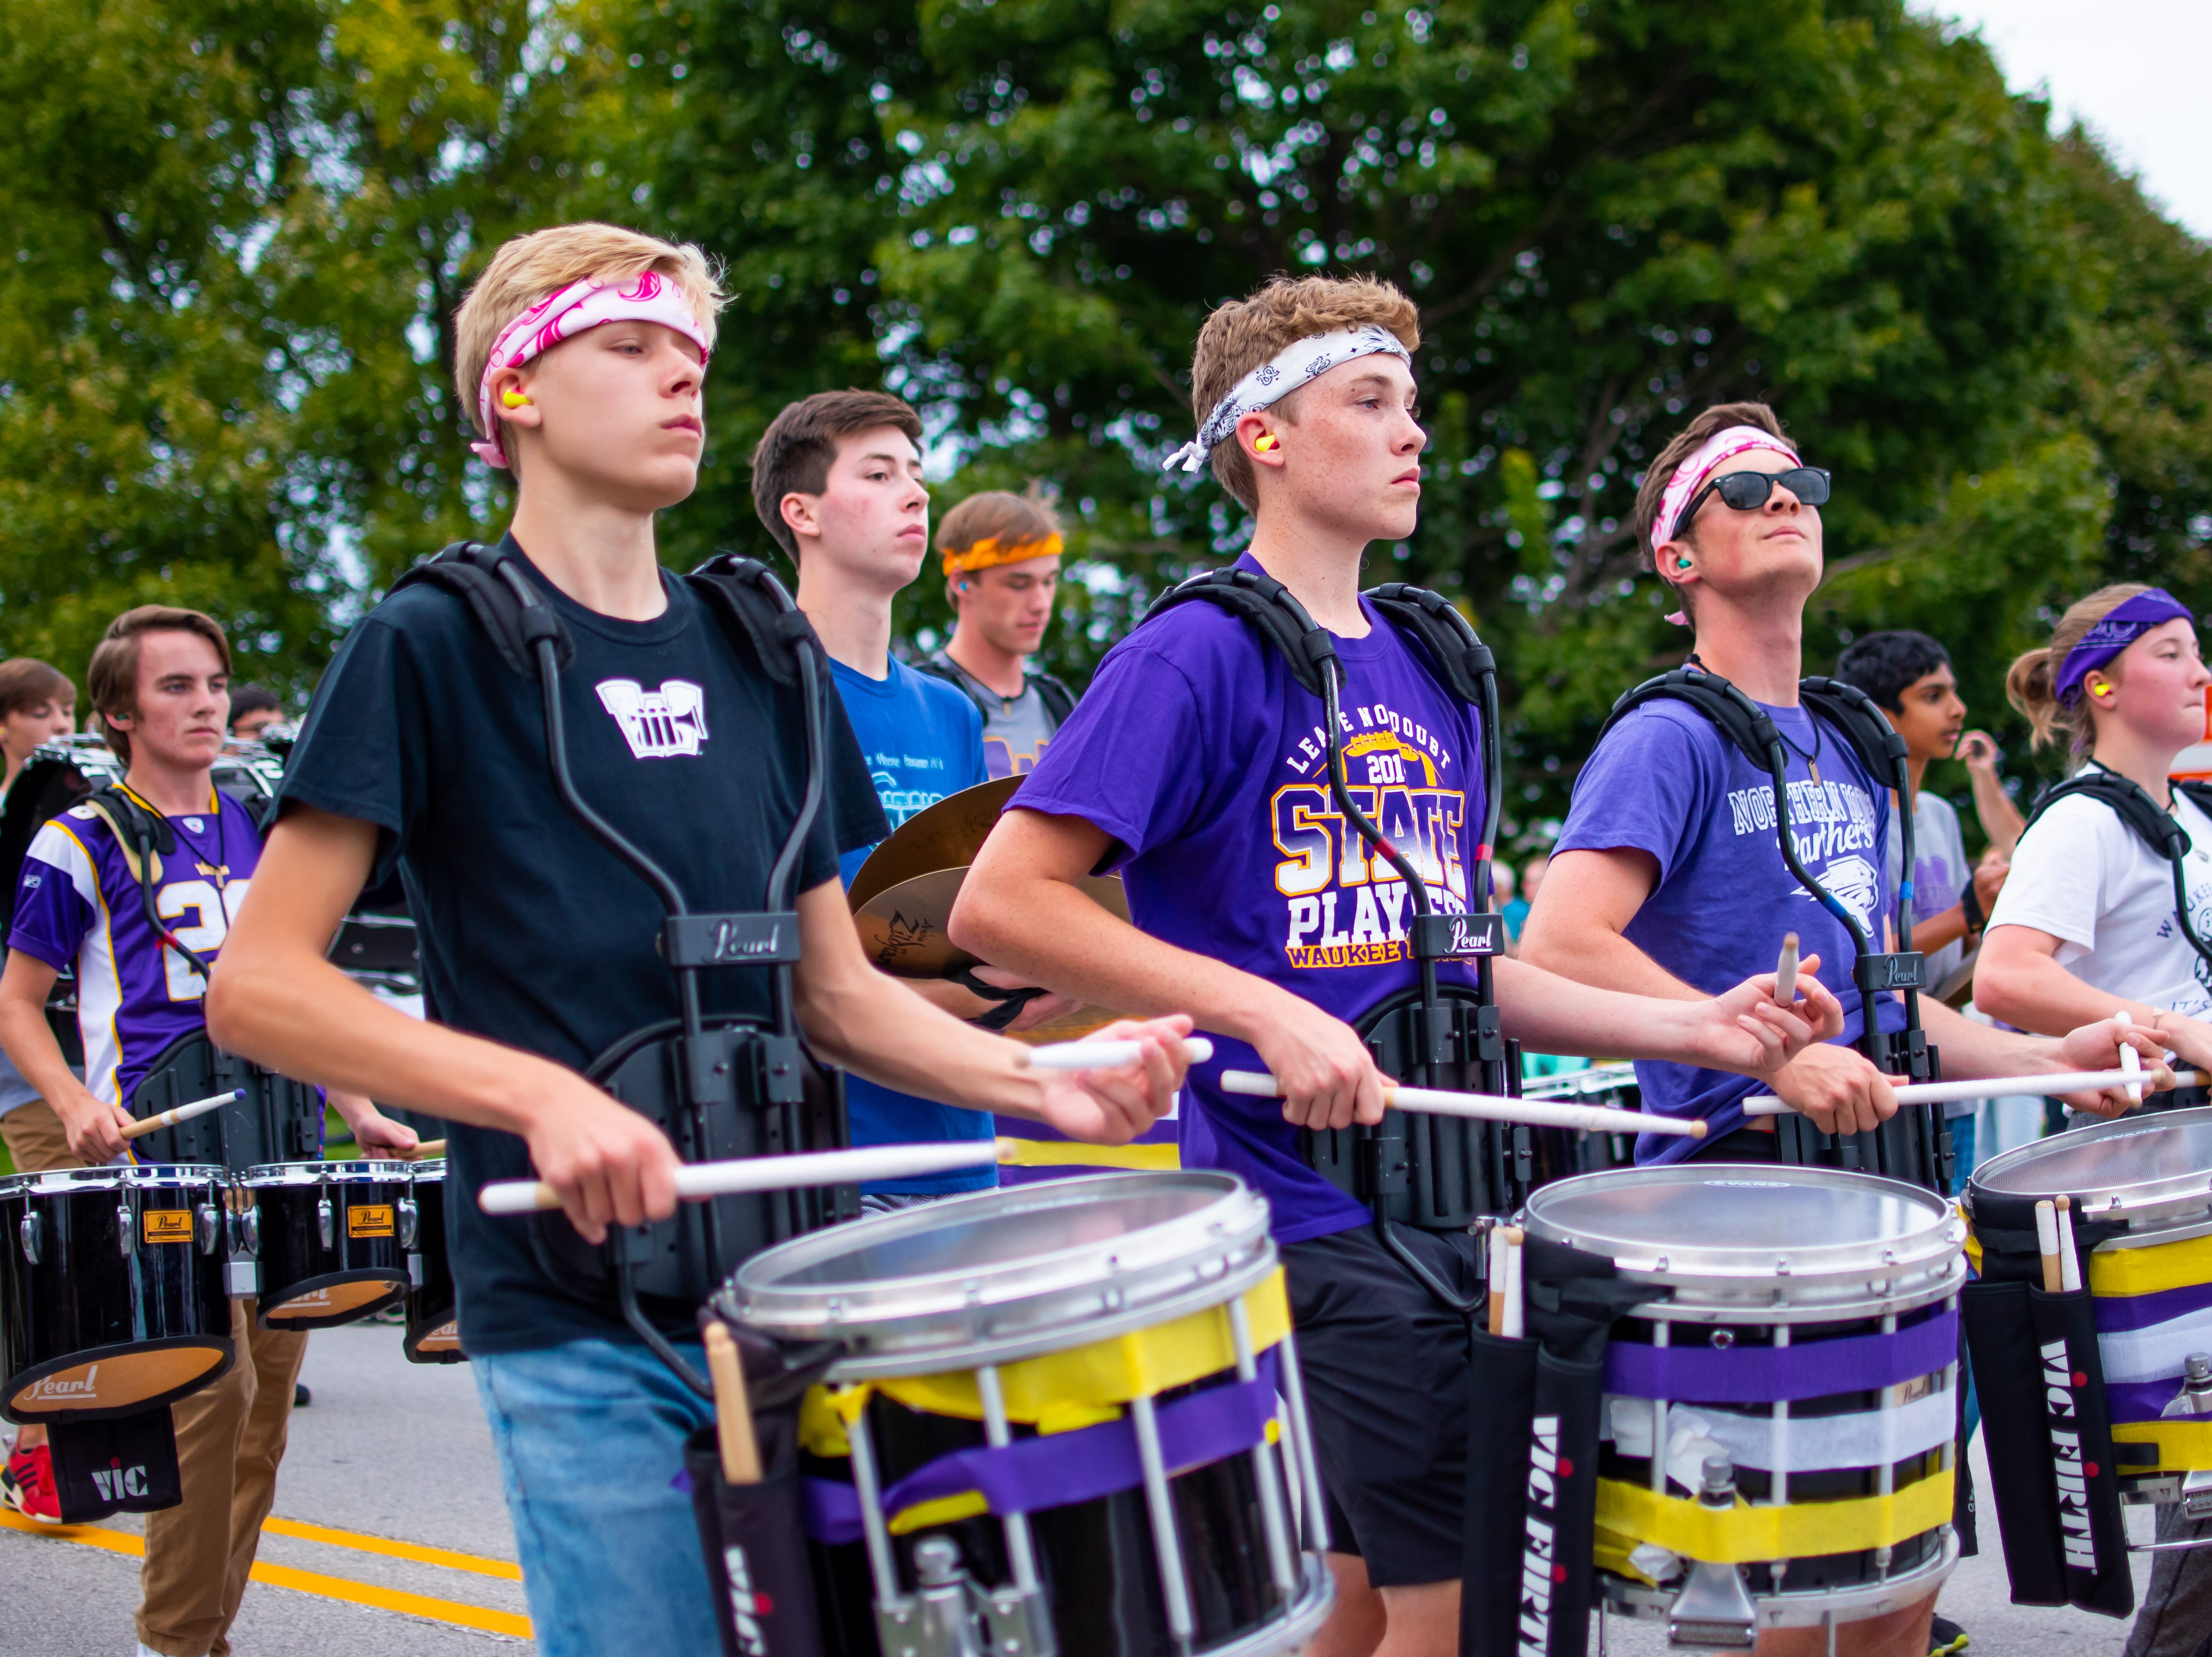 Waukee high school drum line keeps the Waukee Homecoming Parade on beat on Thursday, September 27, 2018 in Waukee.